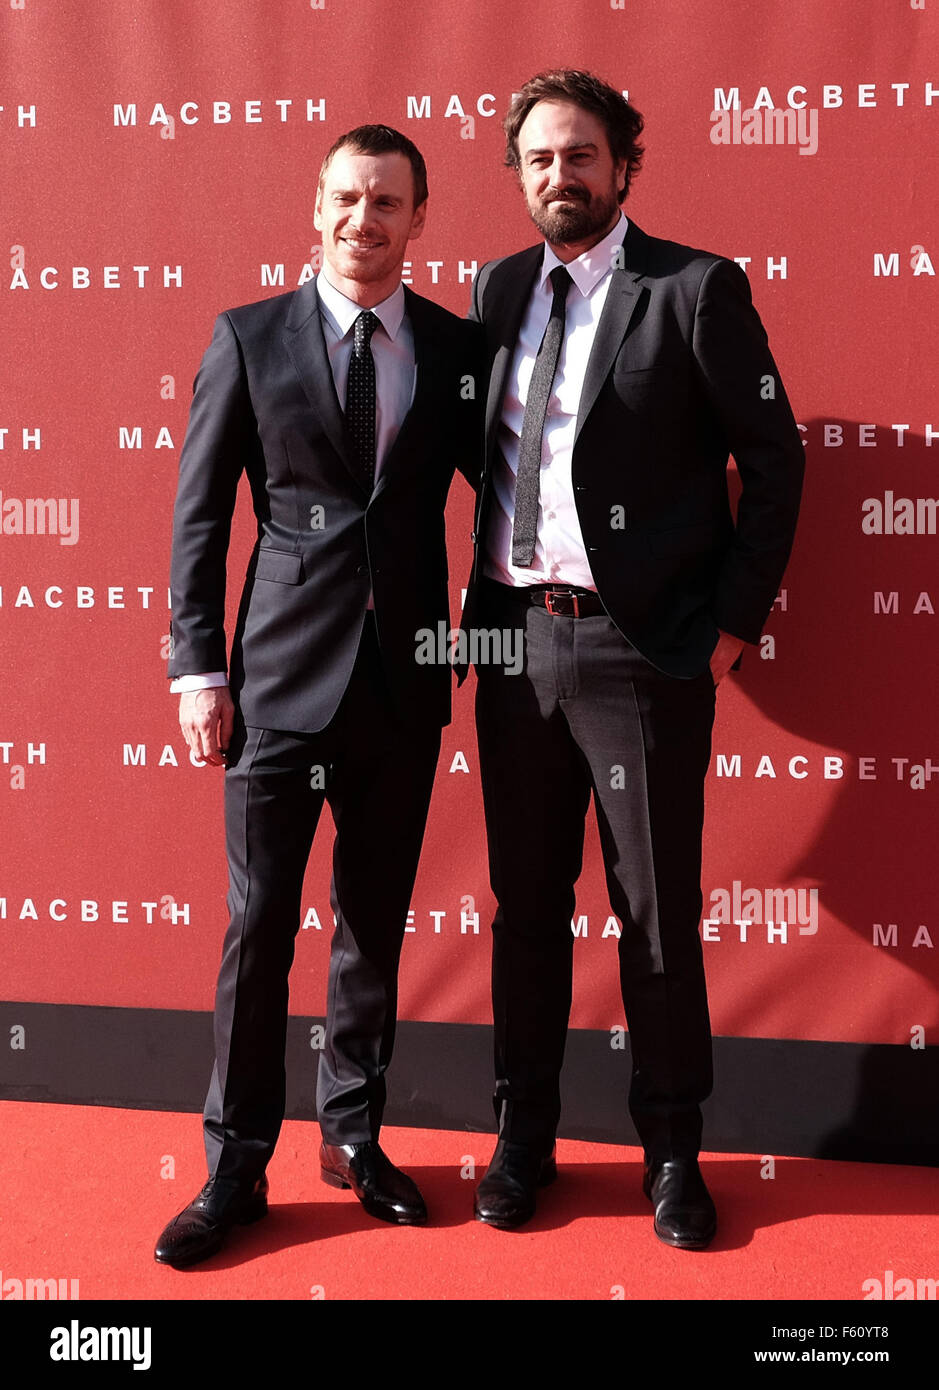 UK premiere of 'Macbeth' held at the Festival Theatre - Arrivals